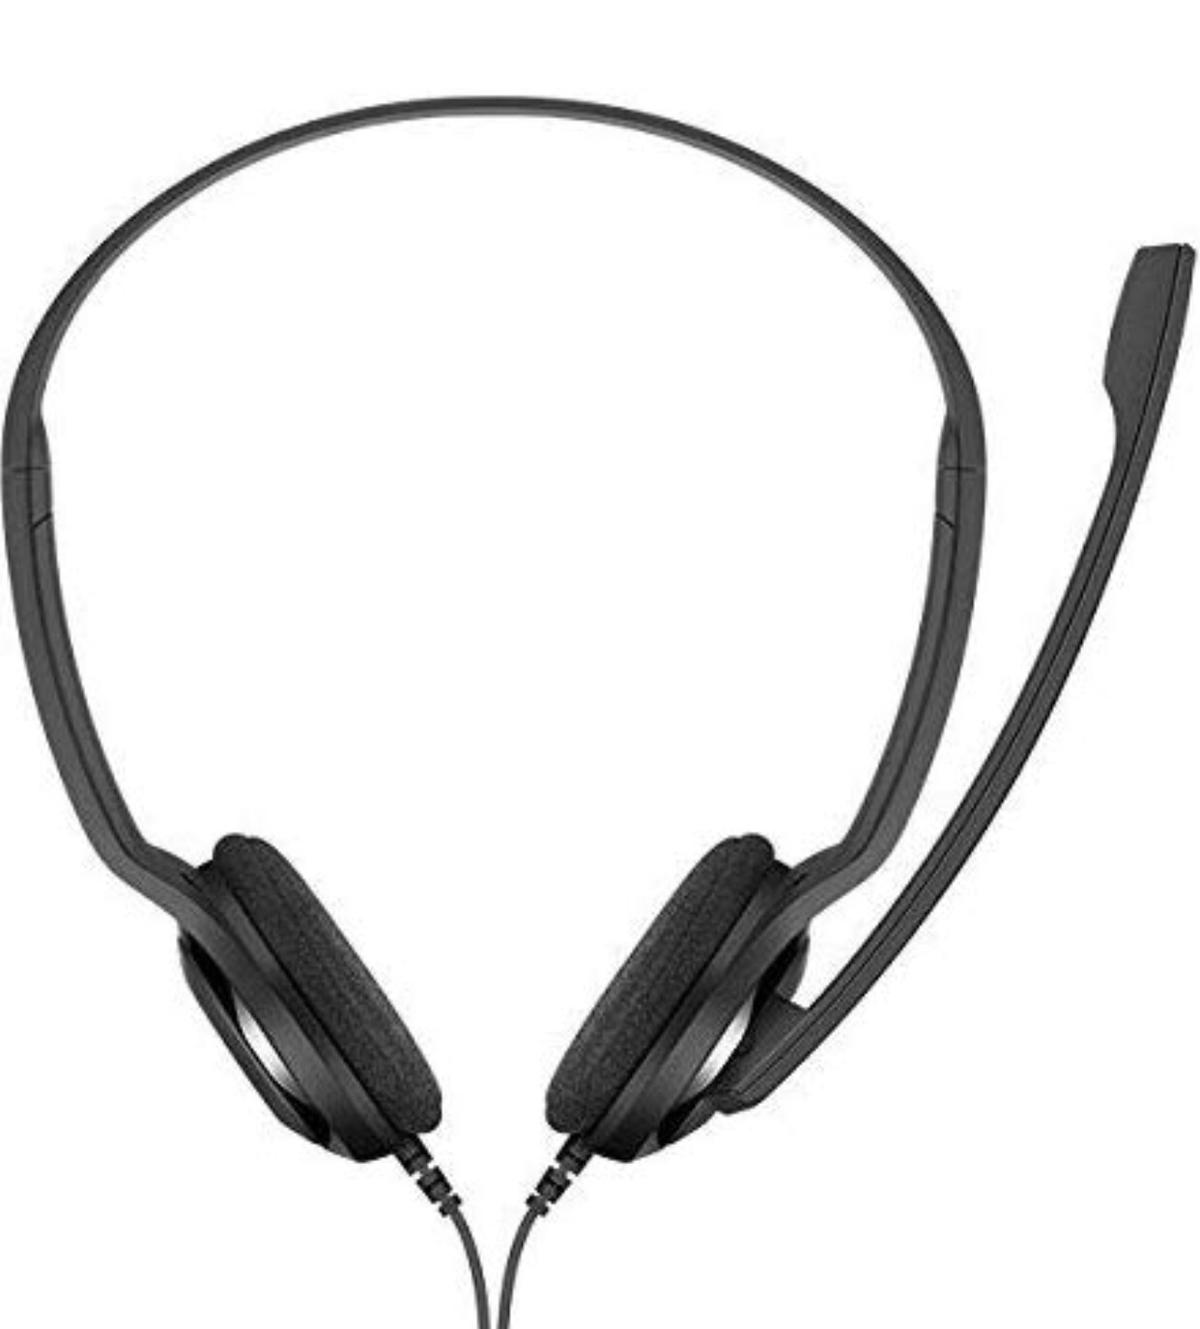 SENNHEISER HEADSET PC 5 CHAT in M14 Manchester for £16.99